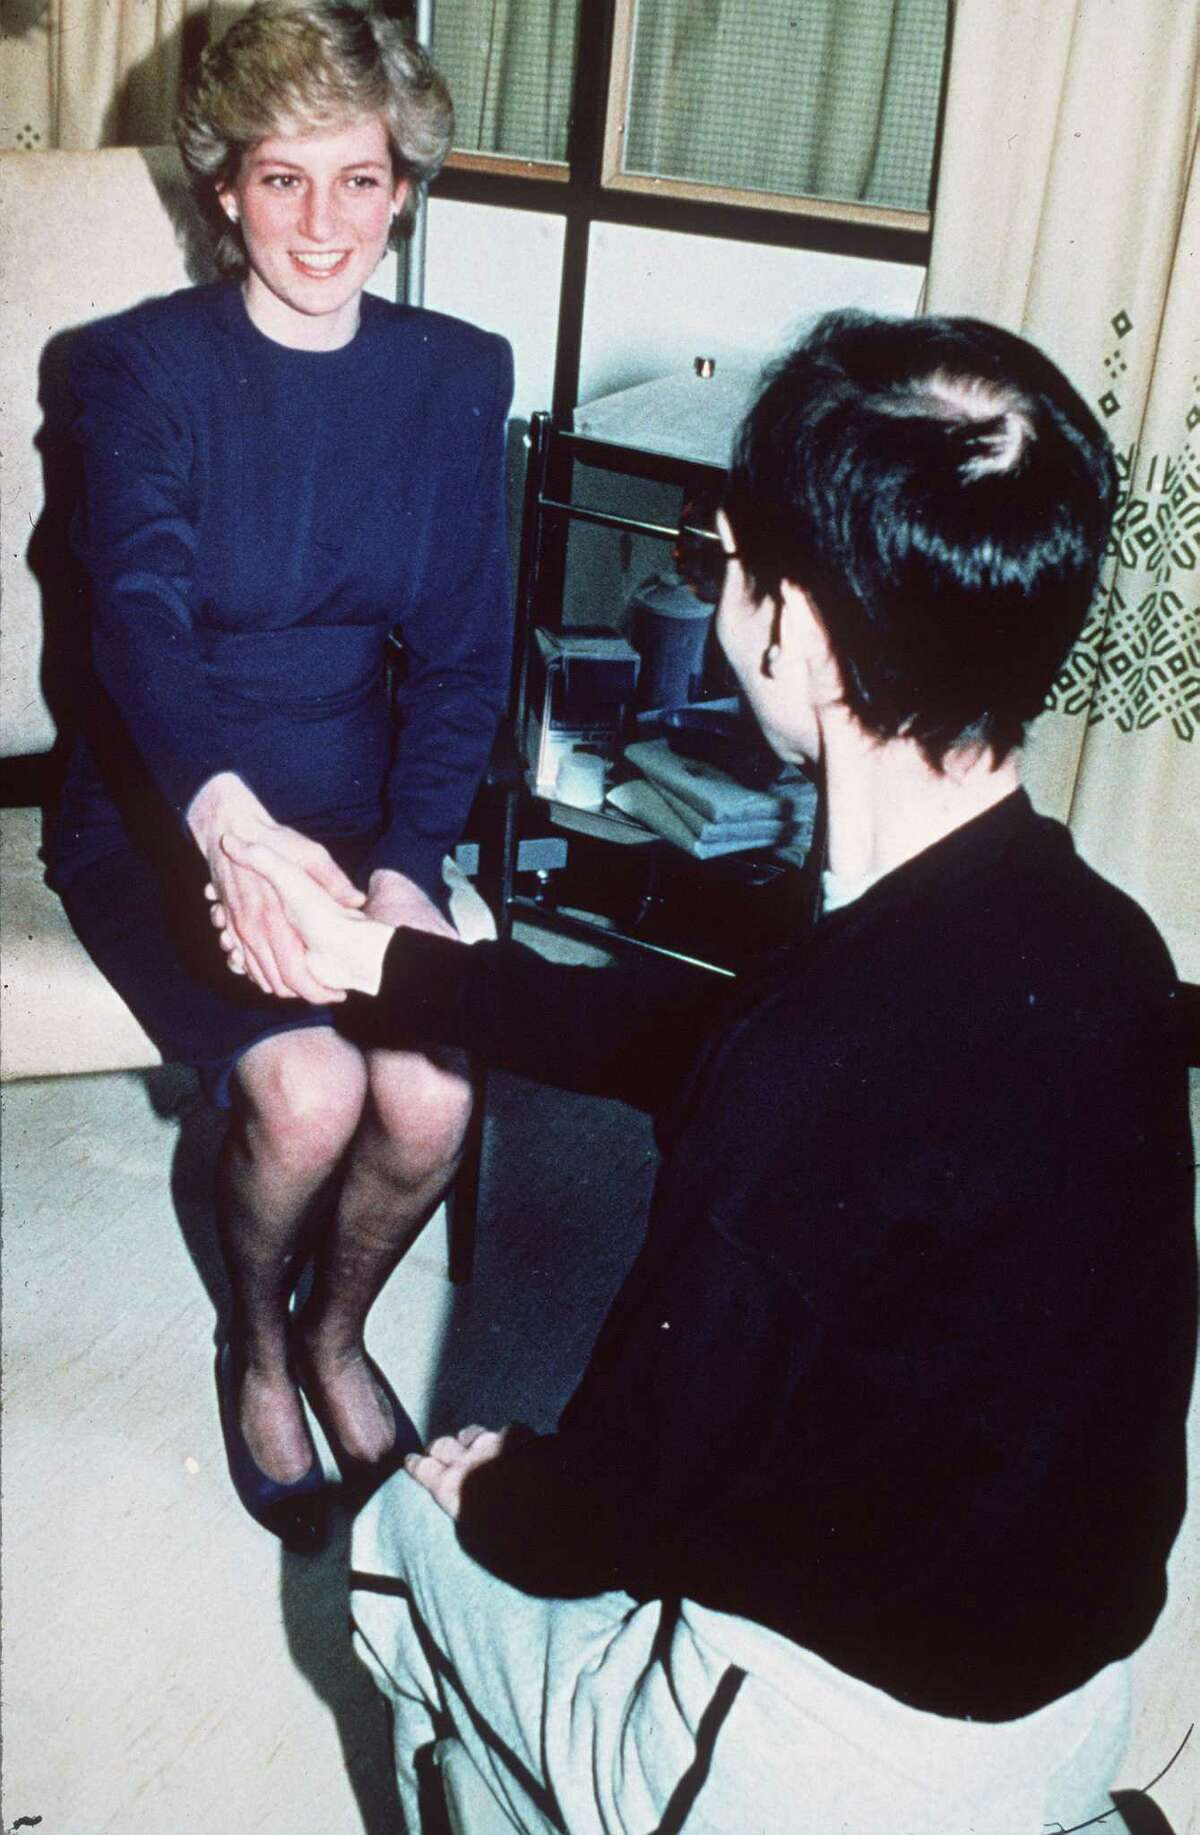 Princess Diana is also long remembered by some queer people for her unapologetic advocacy for AIDS patients and awareness about HIV, the virus that causes AIDS, as pictured above as she shakes the hand of an AIDS patient during her visit to the opening of the United Kingdom's first hospital AIDS unit in 1987.